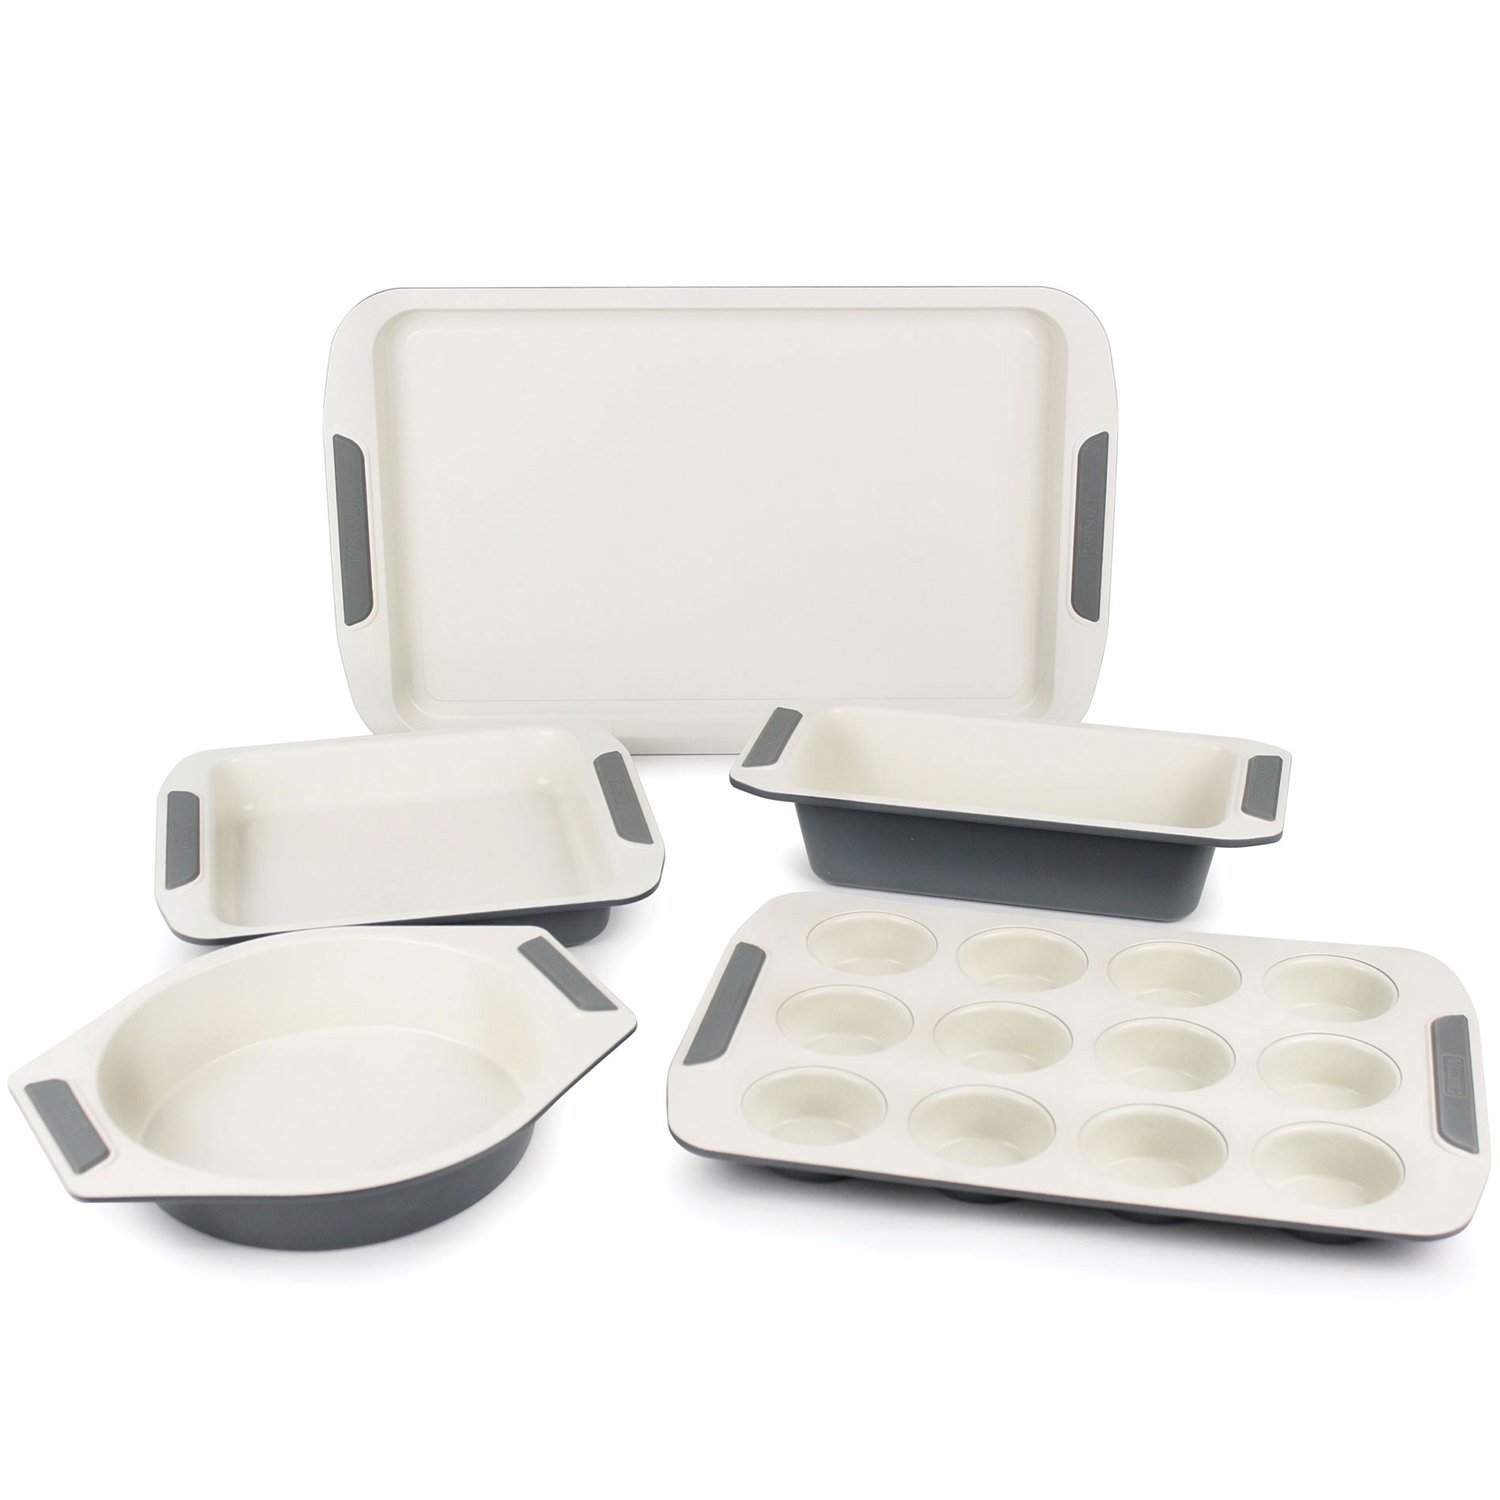 Viking Ceramic Nonstick Bakeware Set, 5-piece